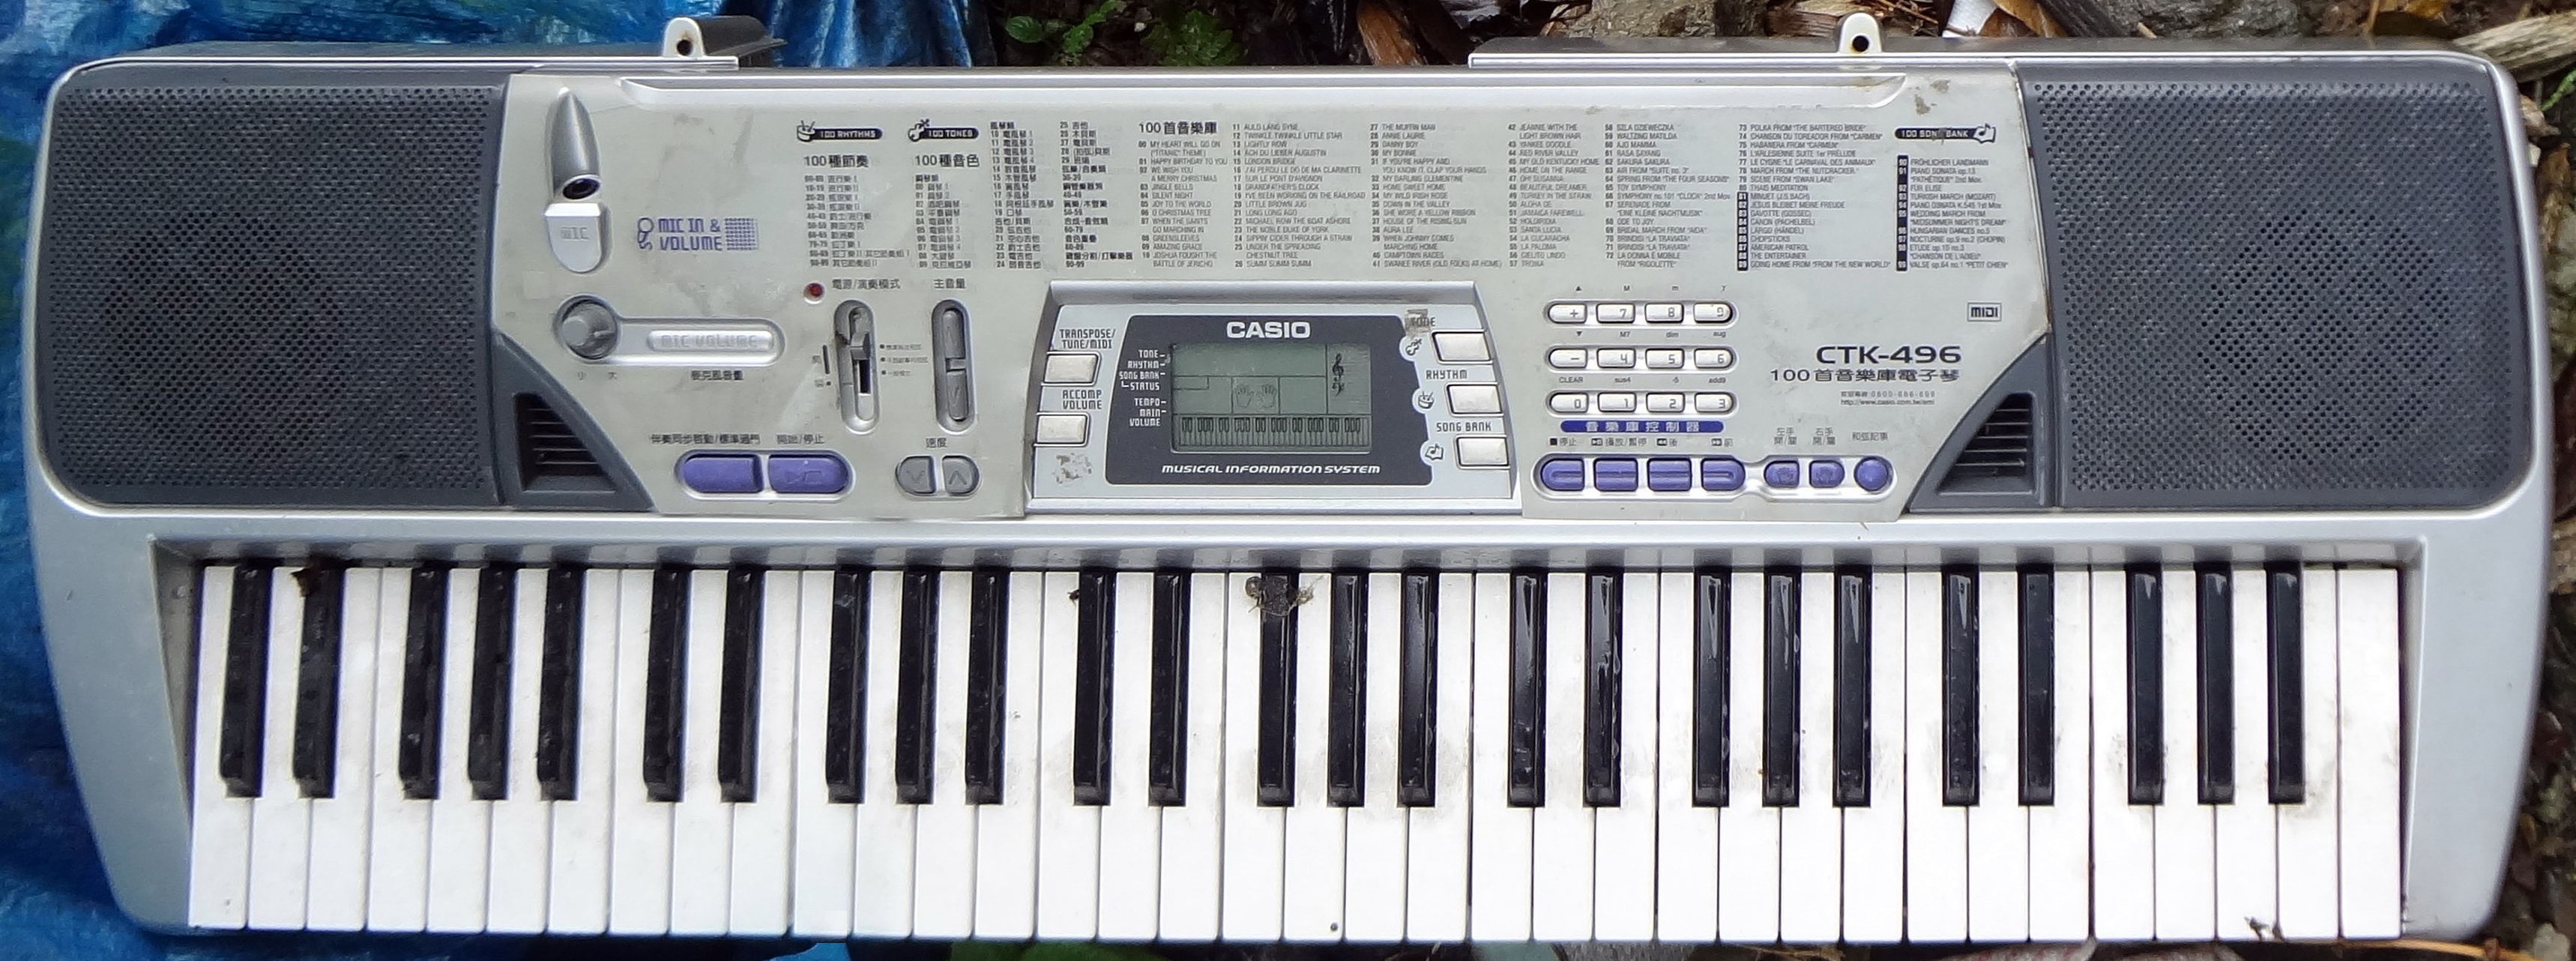 File:Casio CTK-496 (Taiwanese version).jpg